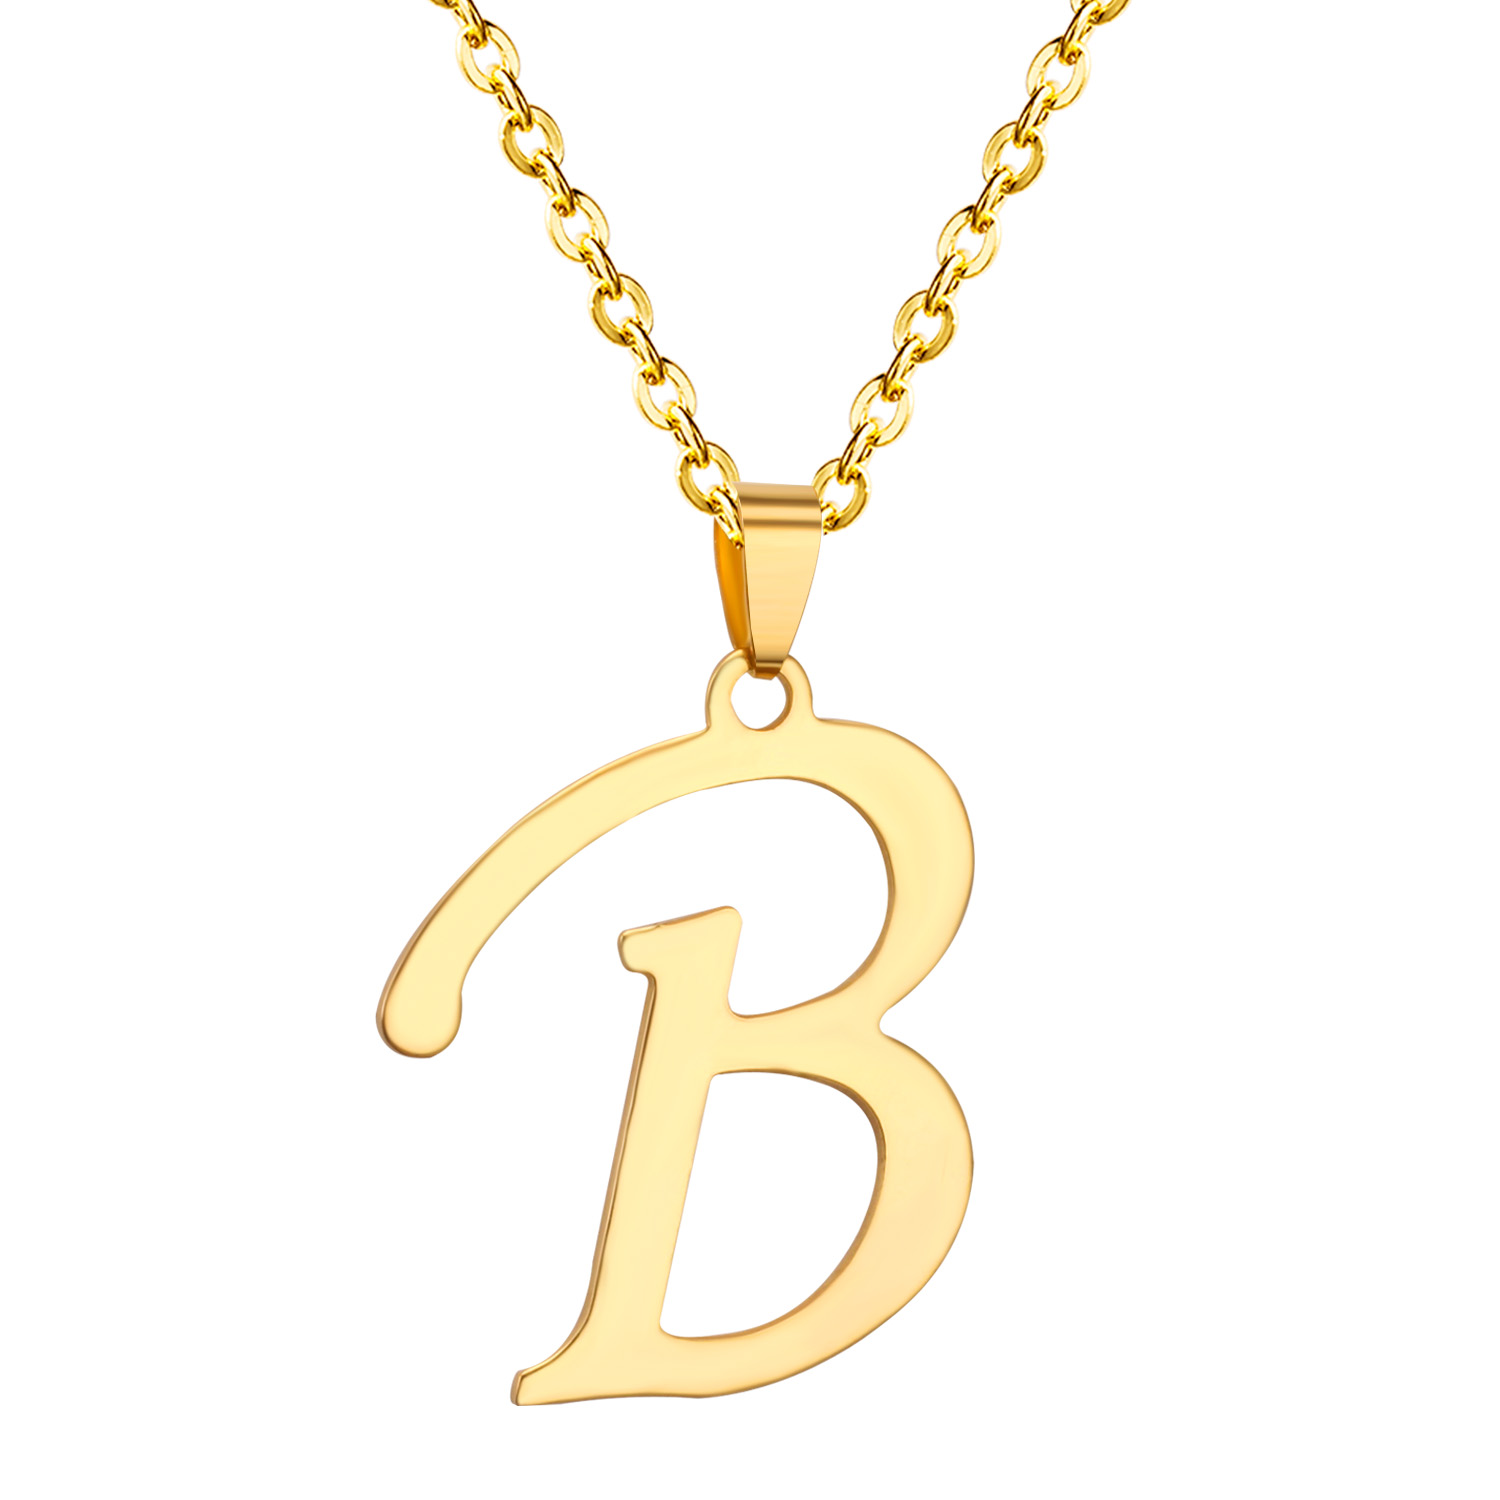 The Name Pendant Word Is B 316L Stainless Steel Pendants Necklaces,Free  Chain In Pendant Necklaces From Jewelry U0026 Accessories On Aliexpress.com |  Alibaba ...